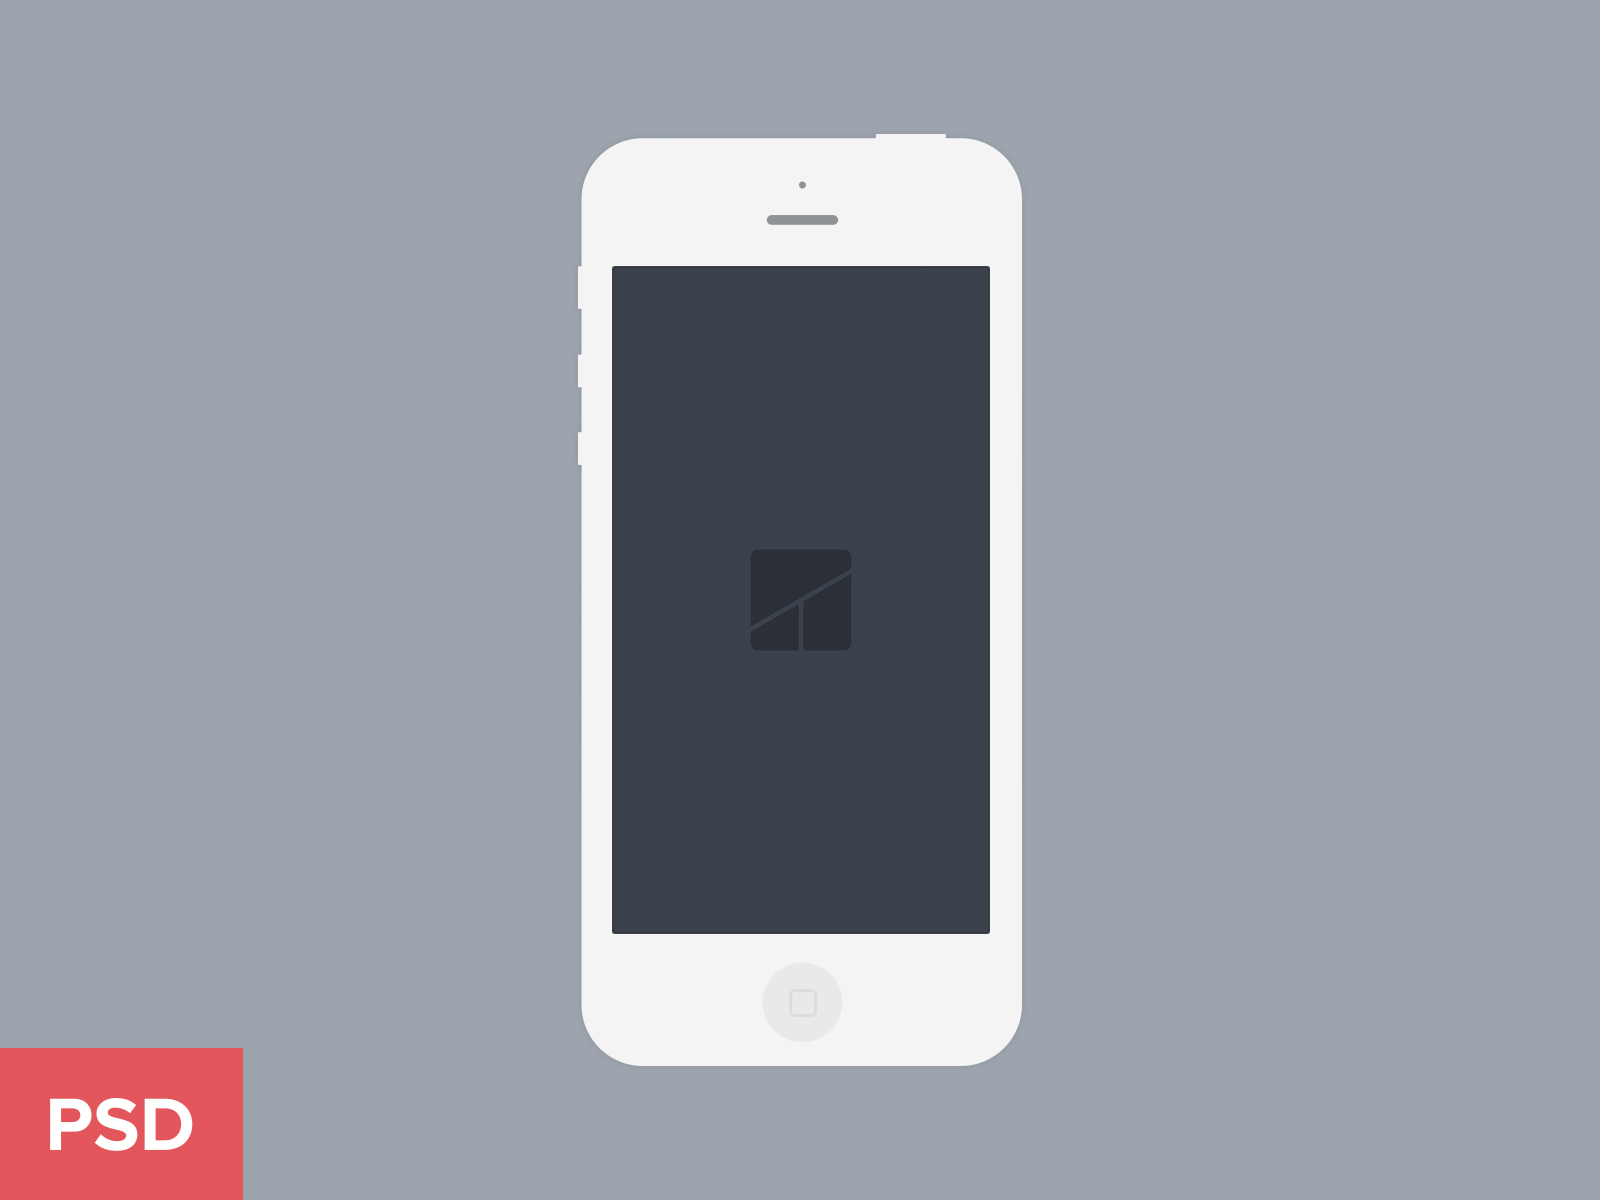 13 IPhone 5 Vector PSD Images